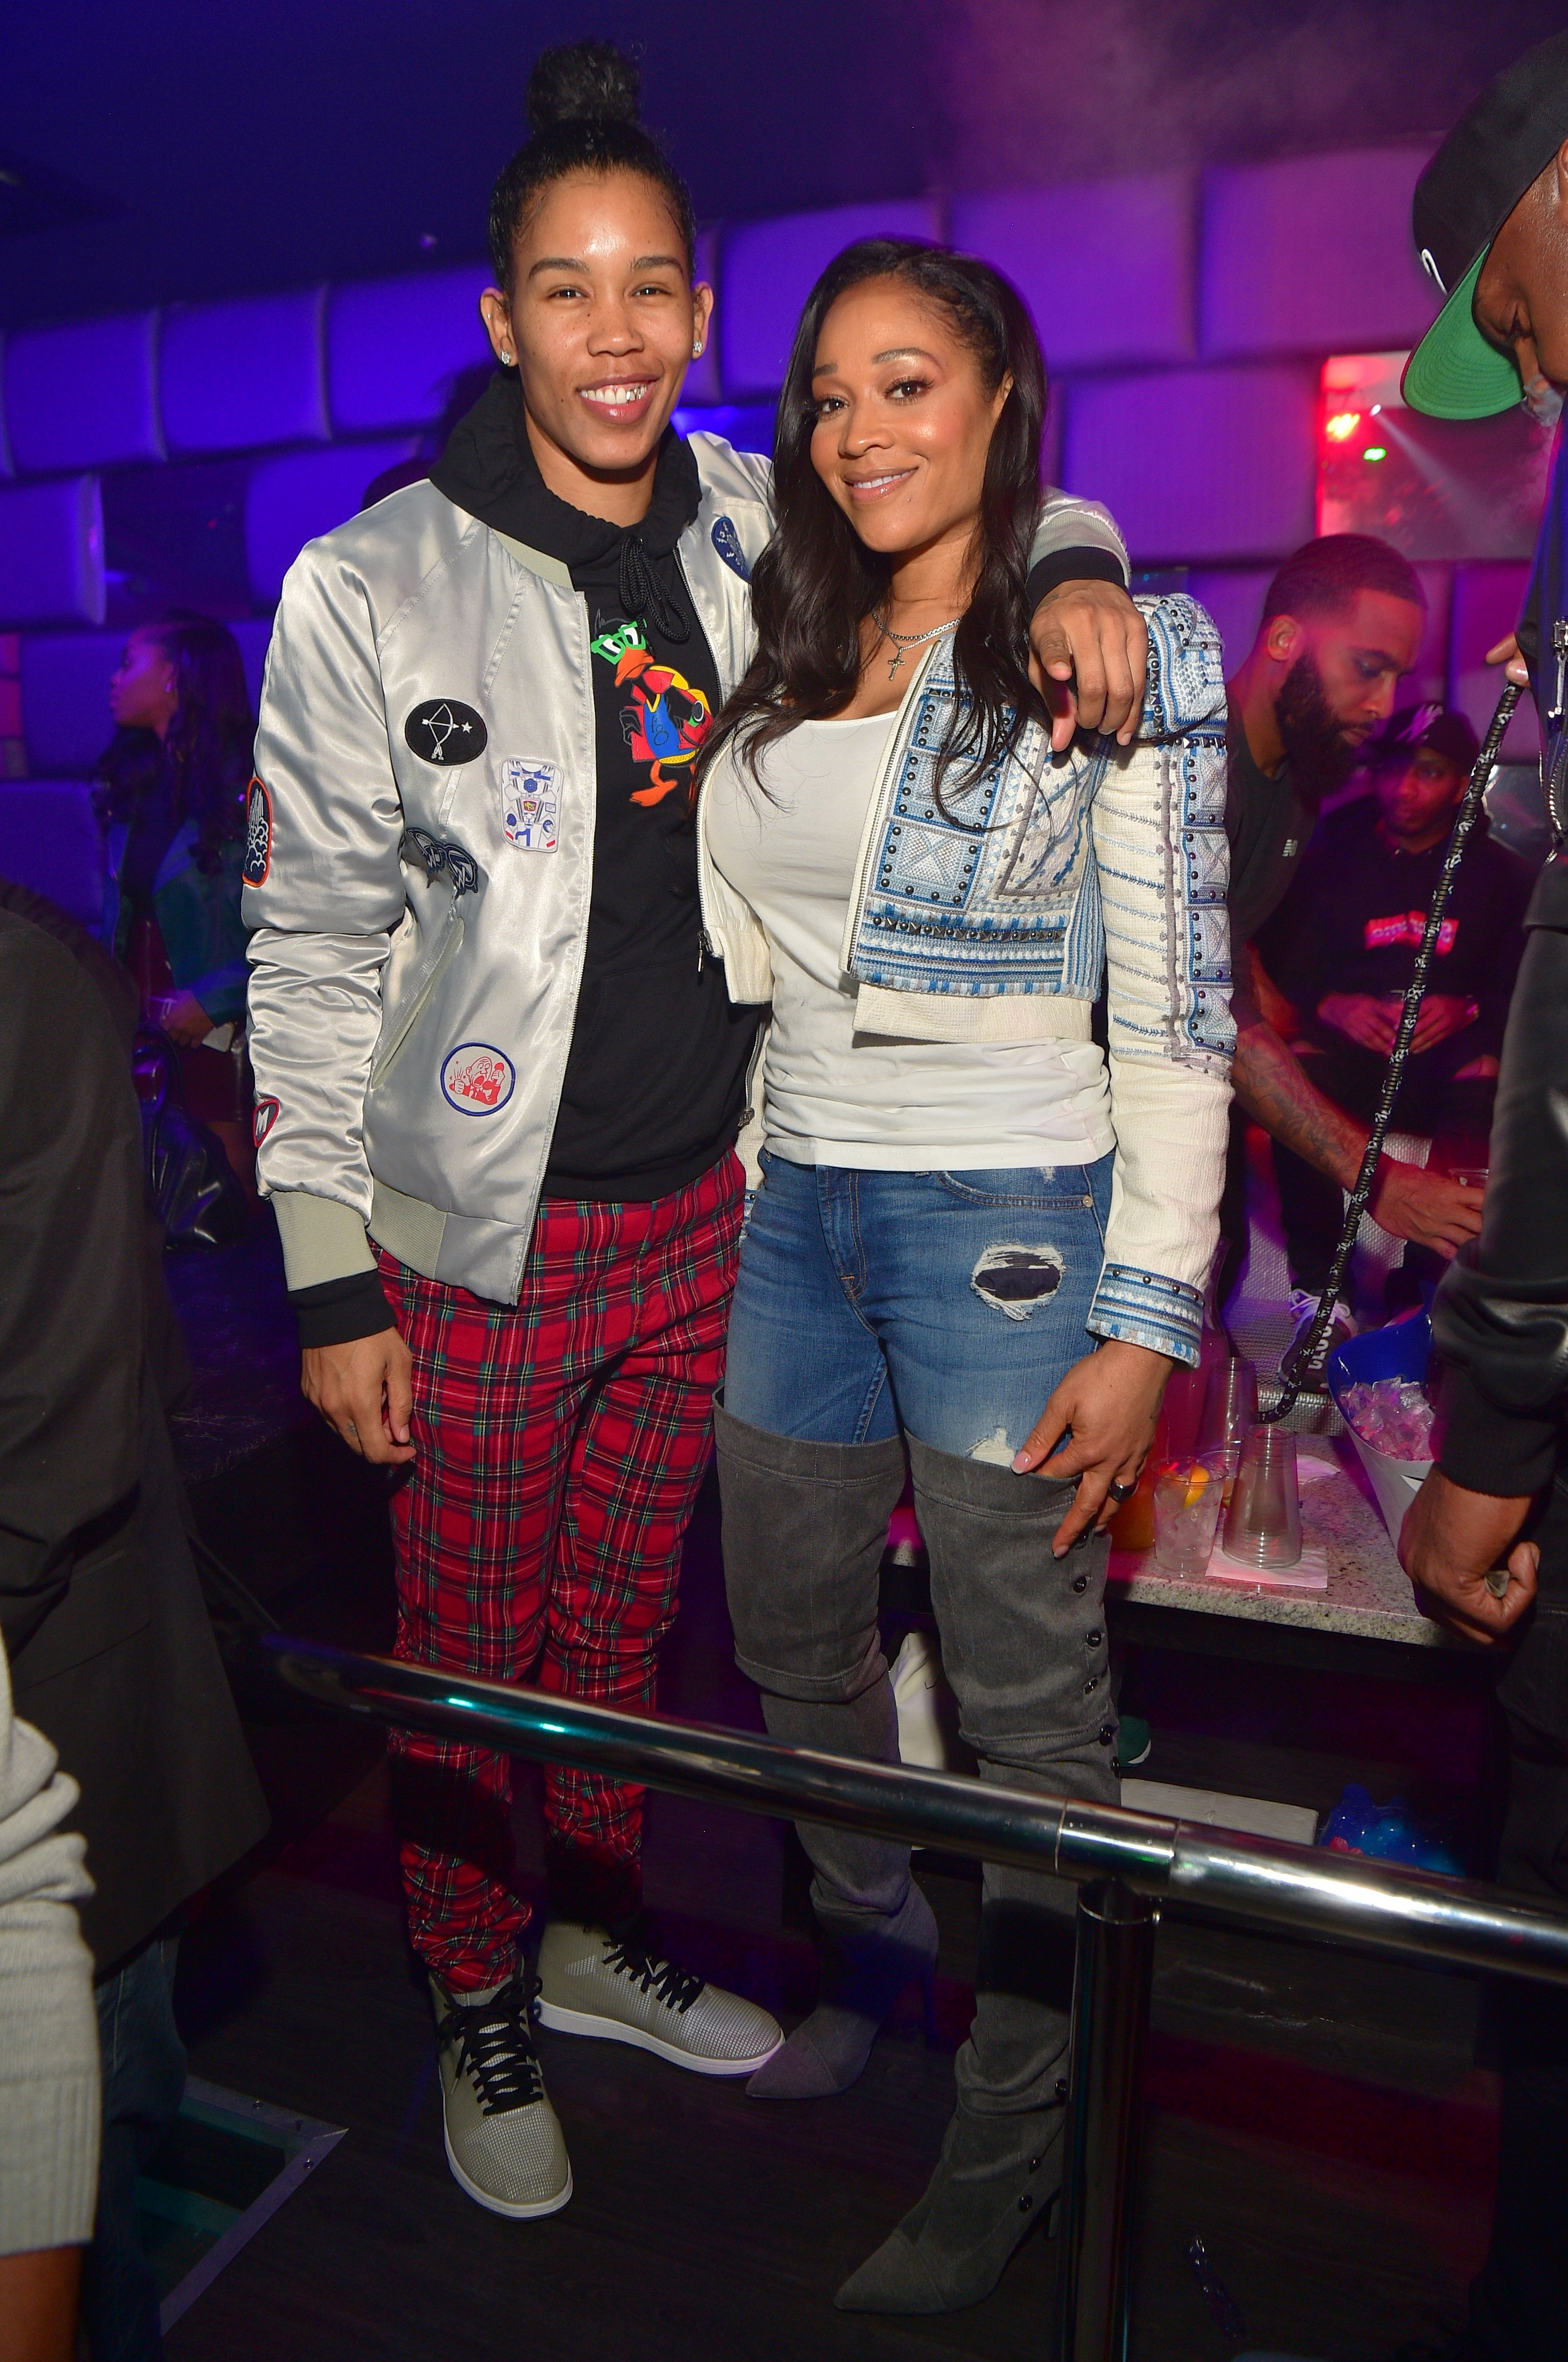 Tamera Young and Mimi Faust pictured at SL Lounge on January 21, 2018 in Atlanta, Georgia. | Source: Getty Images